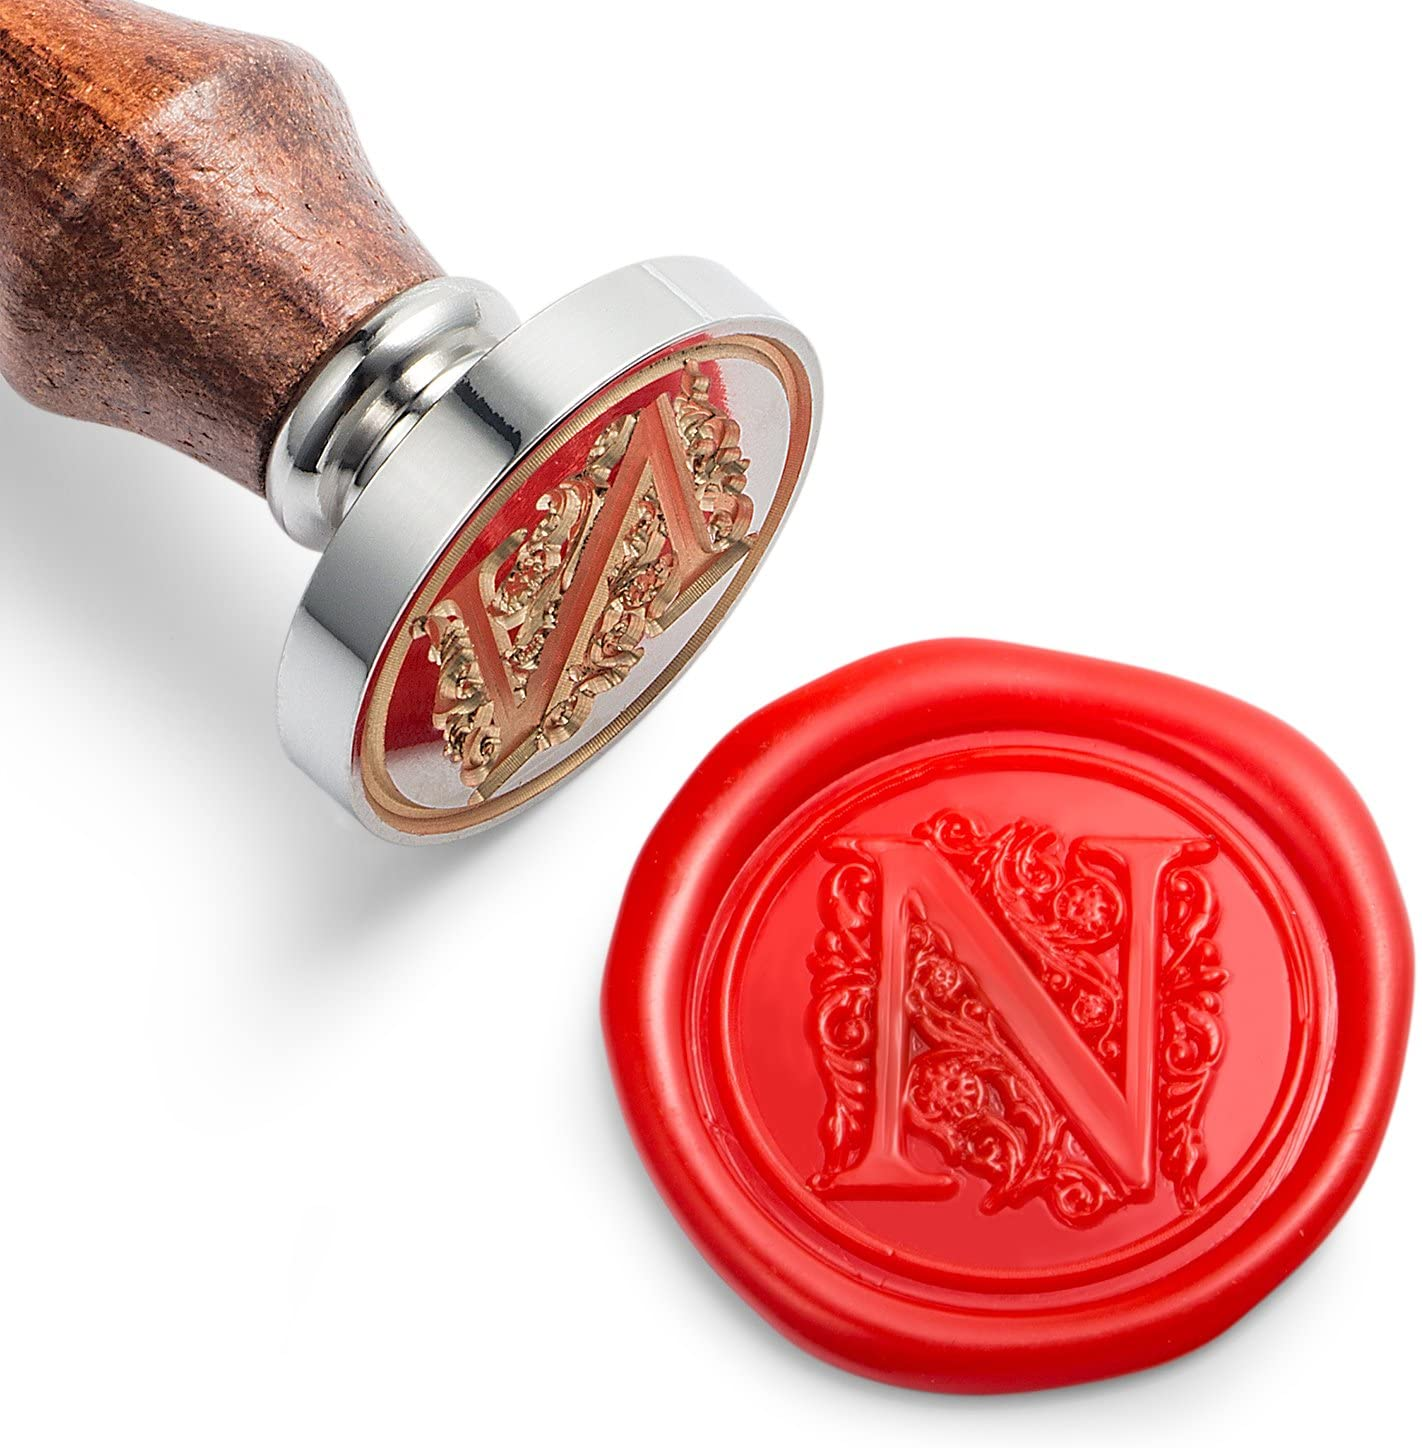 Mceal Wax Seal Stamp, Silver Brass Head with Wooden Handle, Regal Letter N